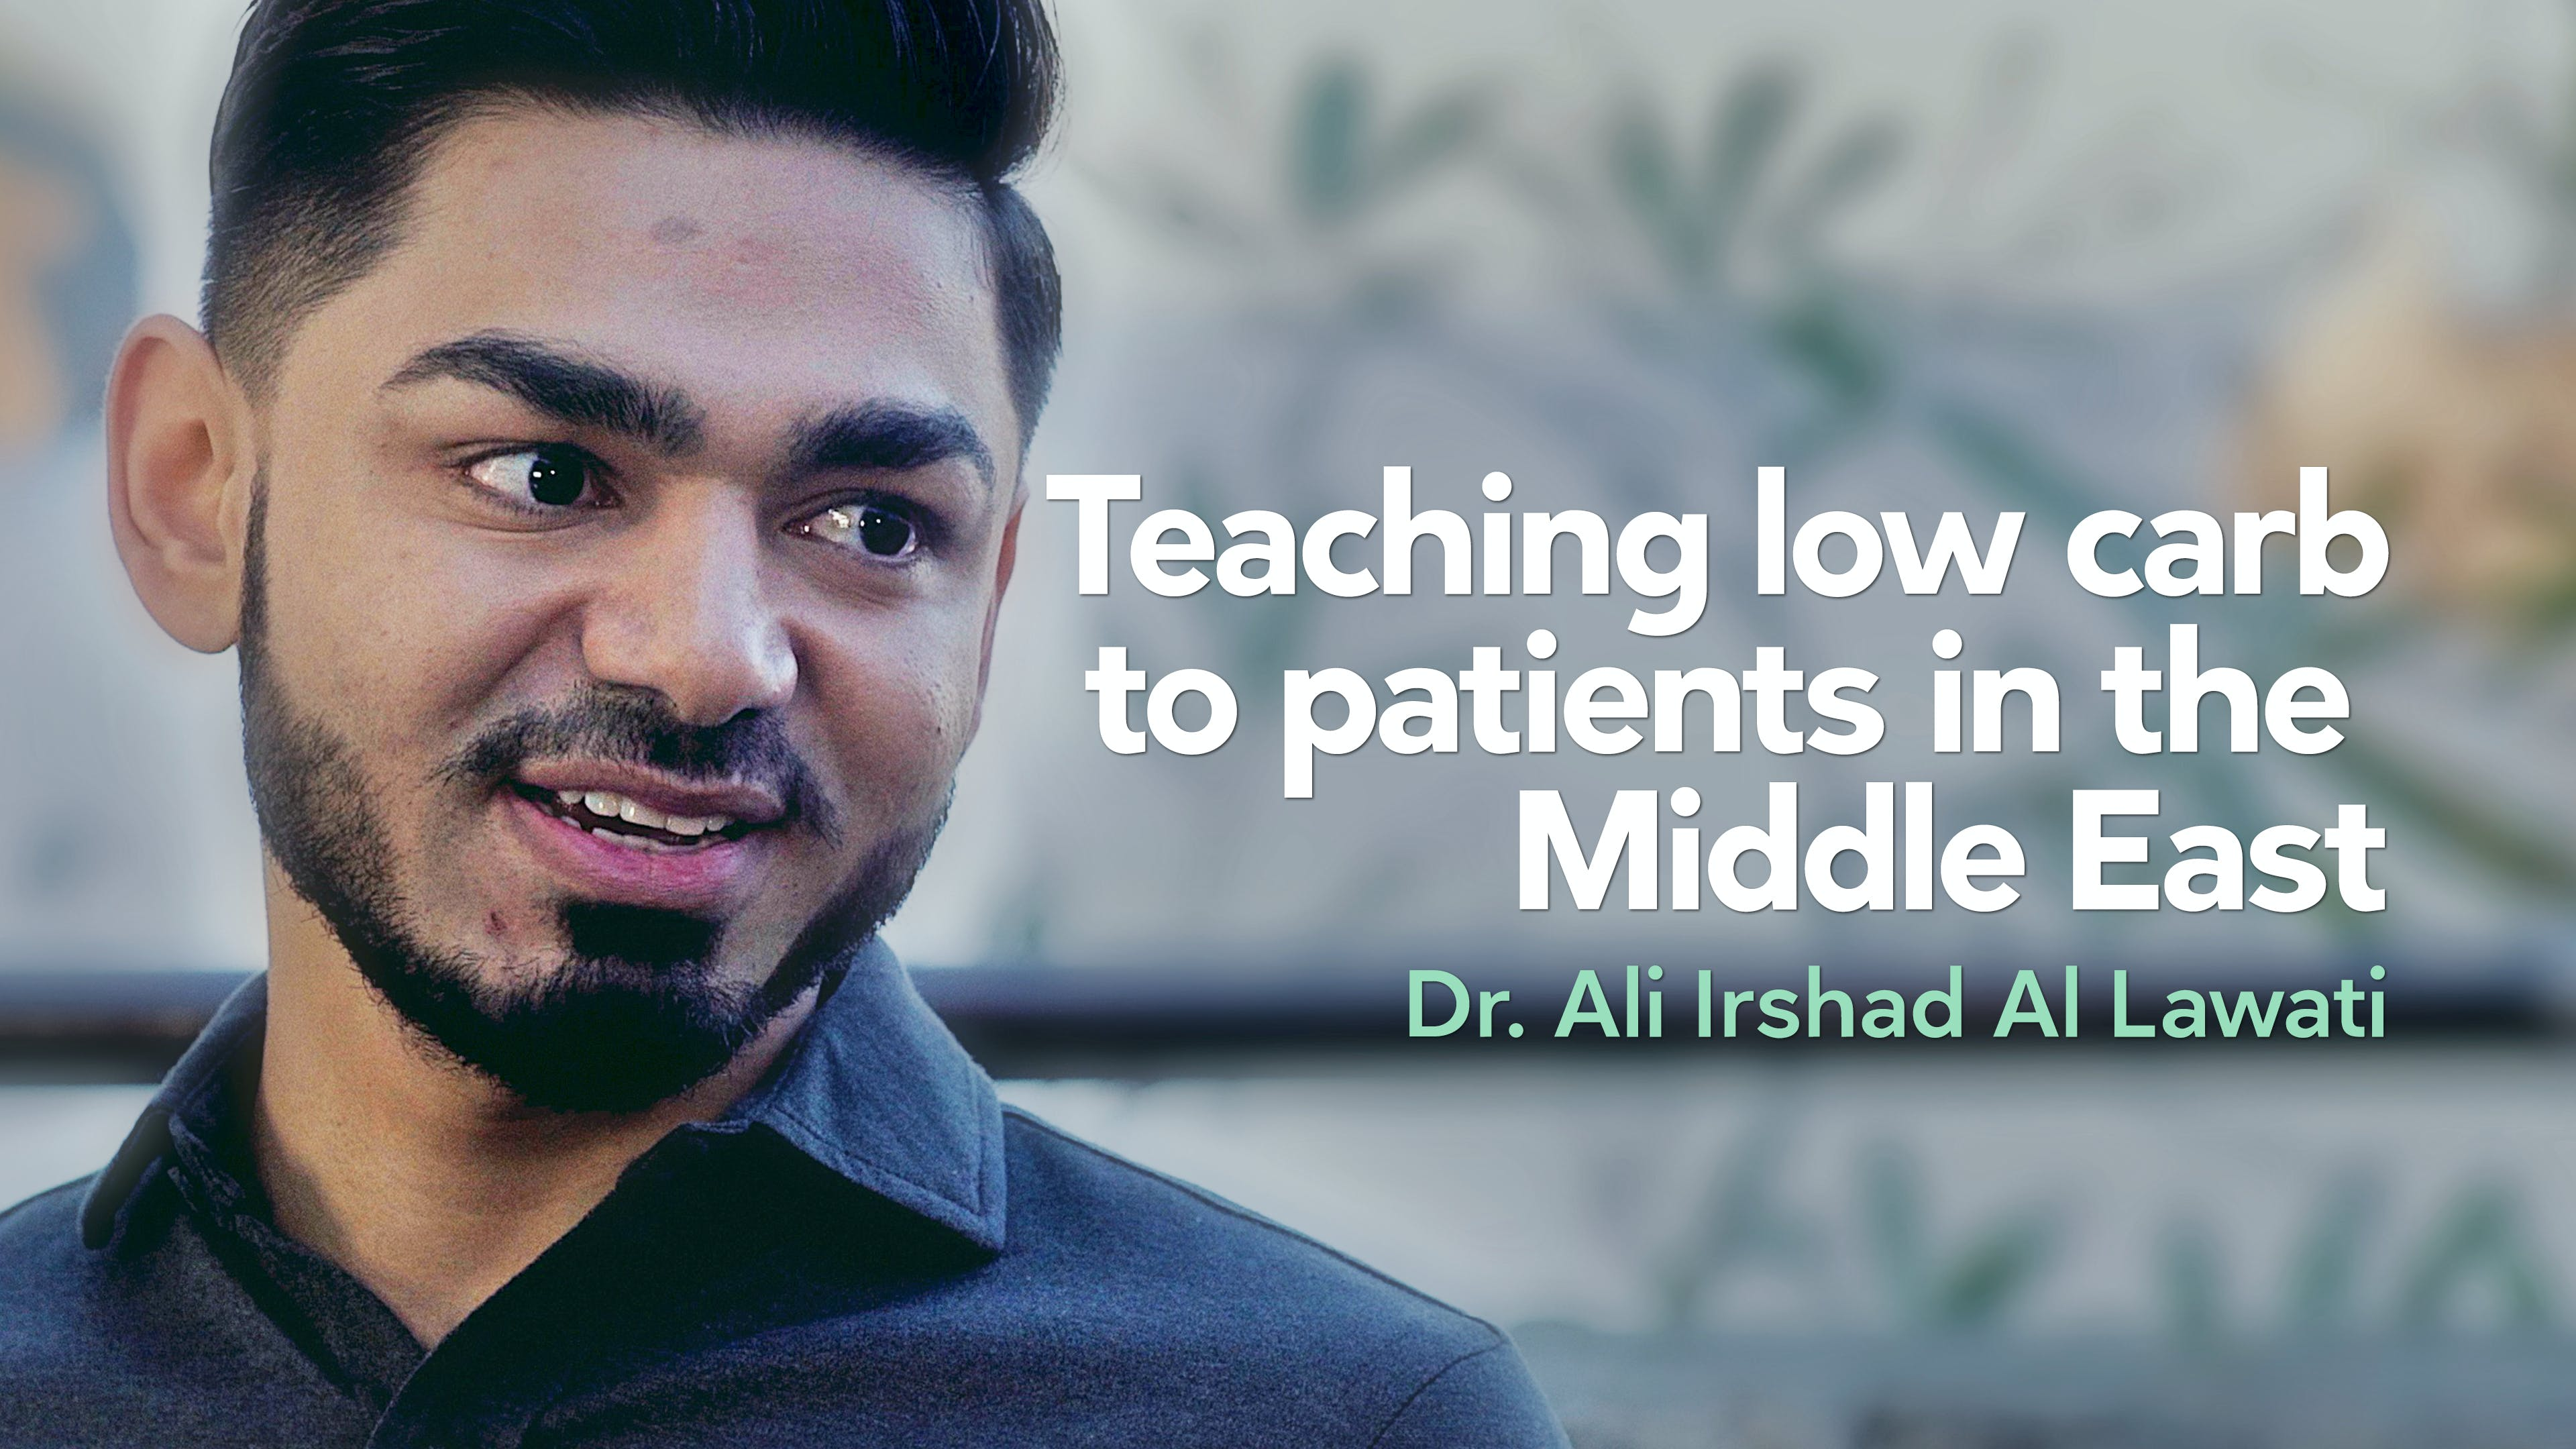 Teaching low carb to patients in the Middle East